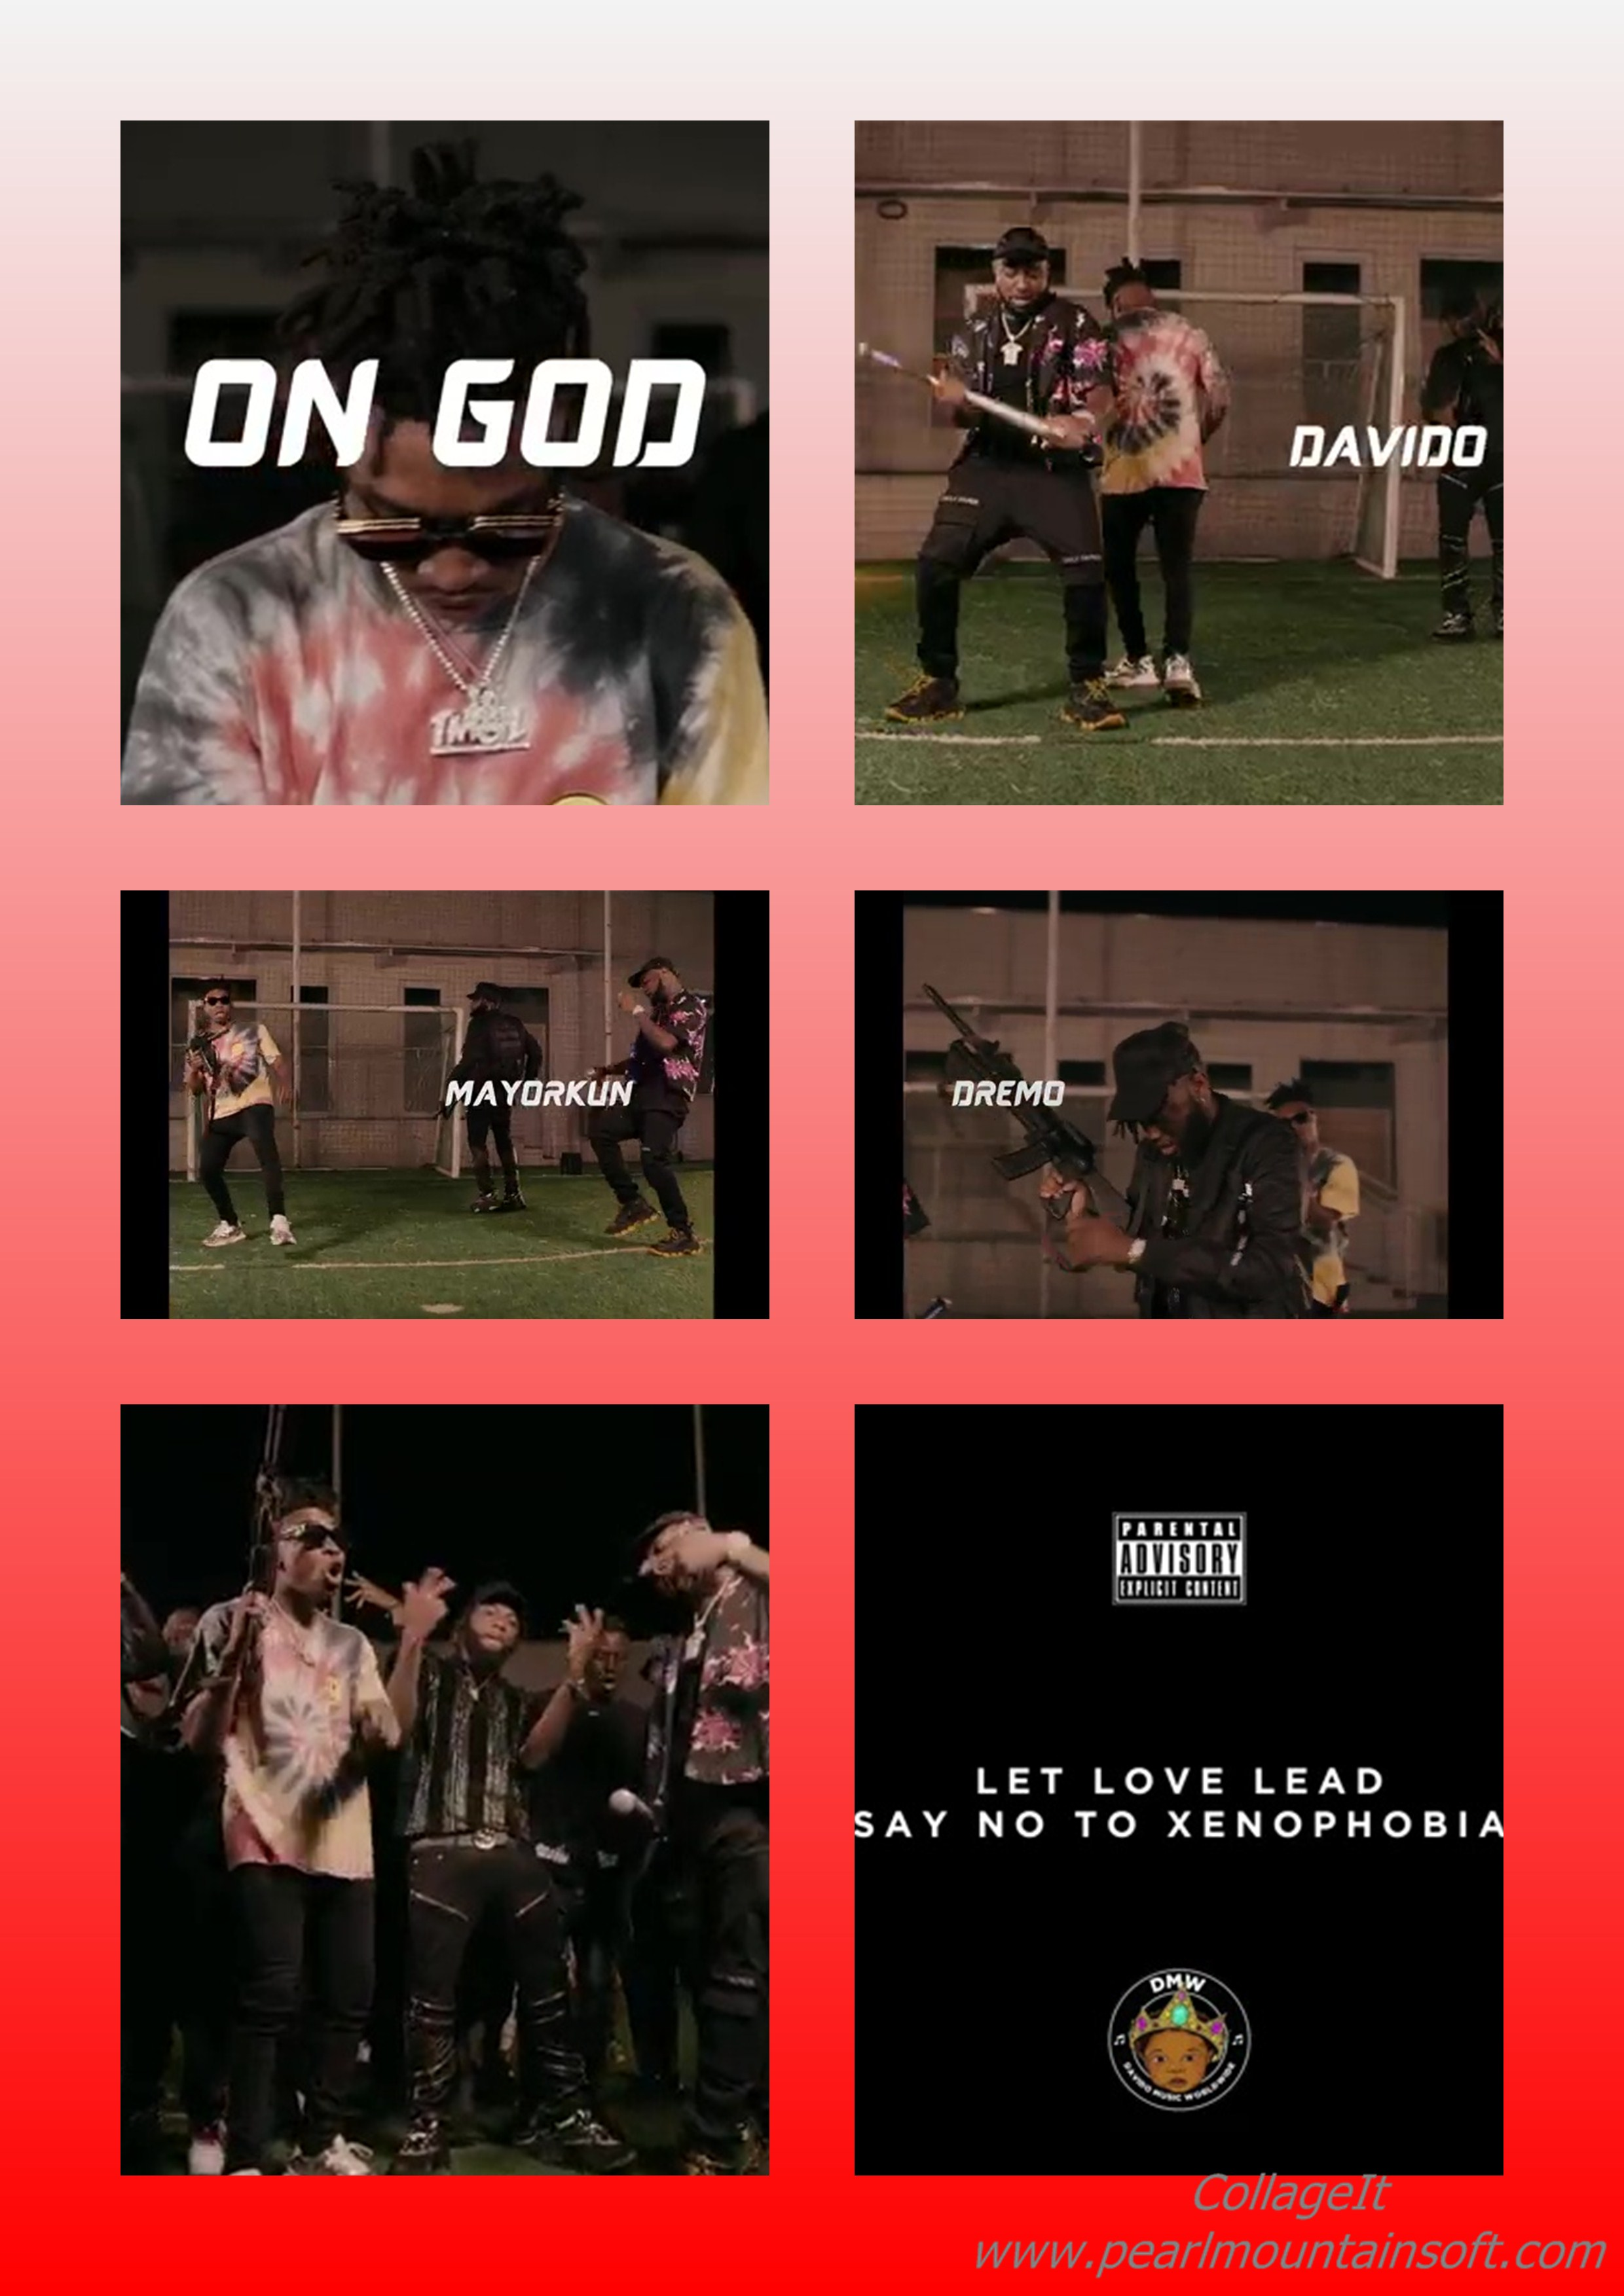 "(+LYRICS+TRANSLATION+MEANING) MUSIC REVIEW: ON GOD BY DMW ""WHERE IS PERUZZI? DID HE GO TO…"""